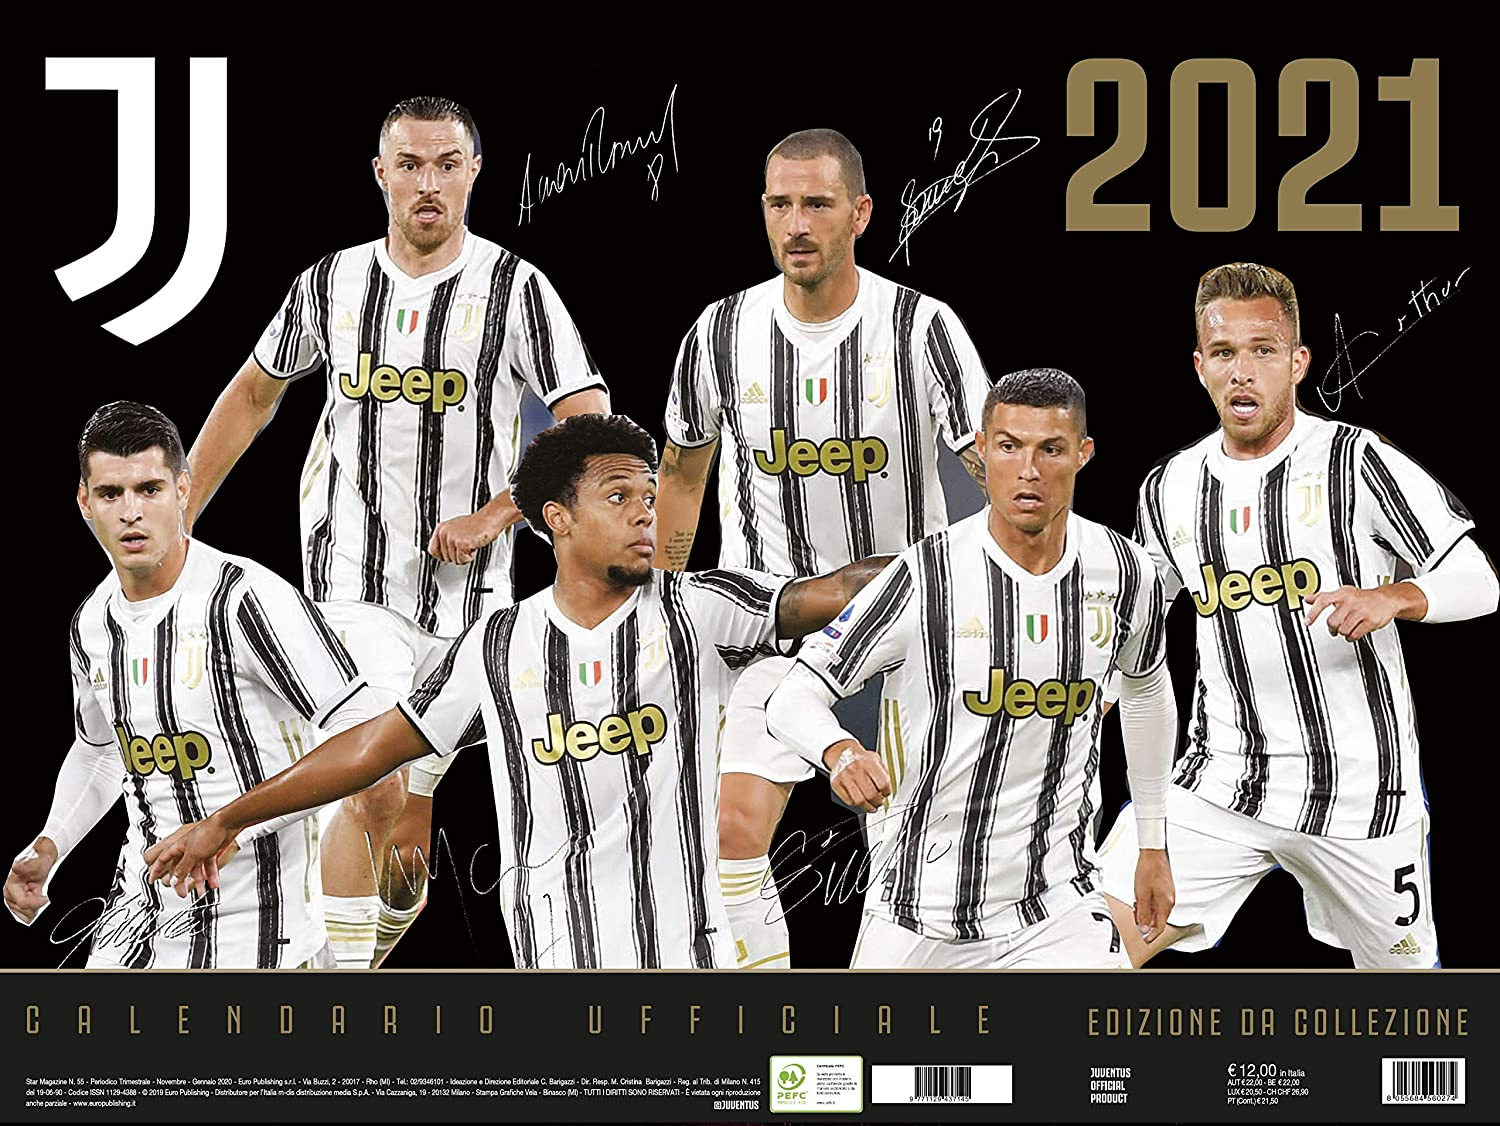 Calendario Juventus 2021 22 Pdf Calendario Juventus 2021 cm 44x33   prodotto ufficiale: Amazon.it